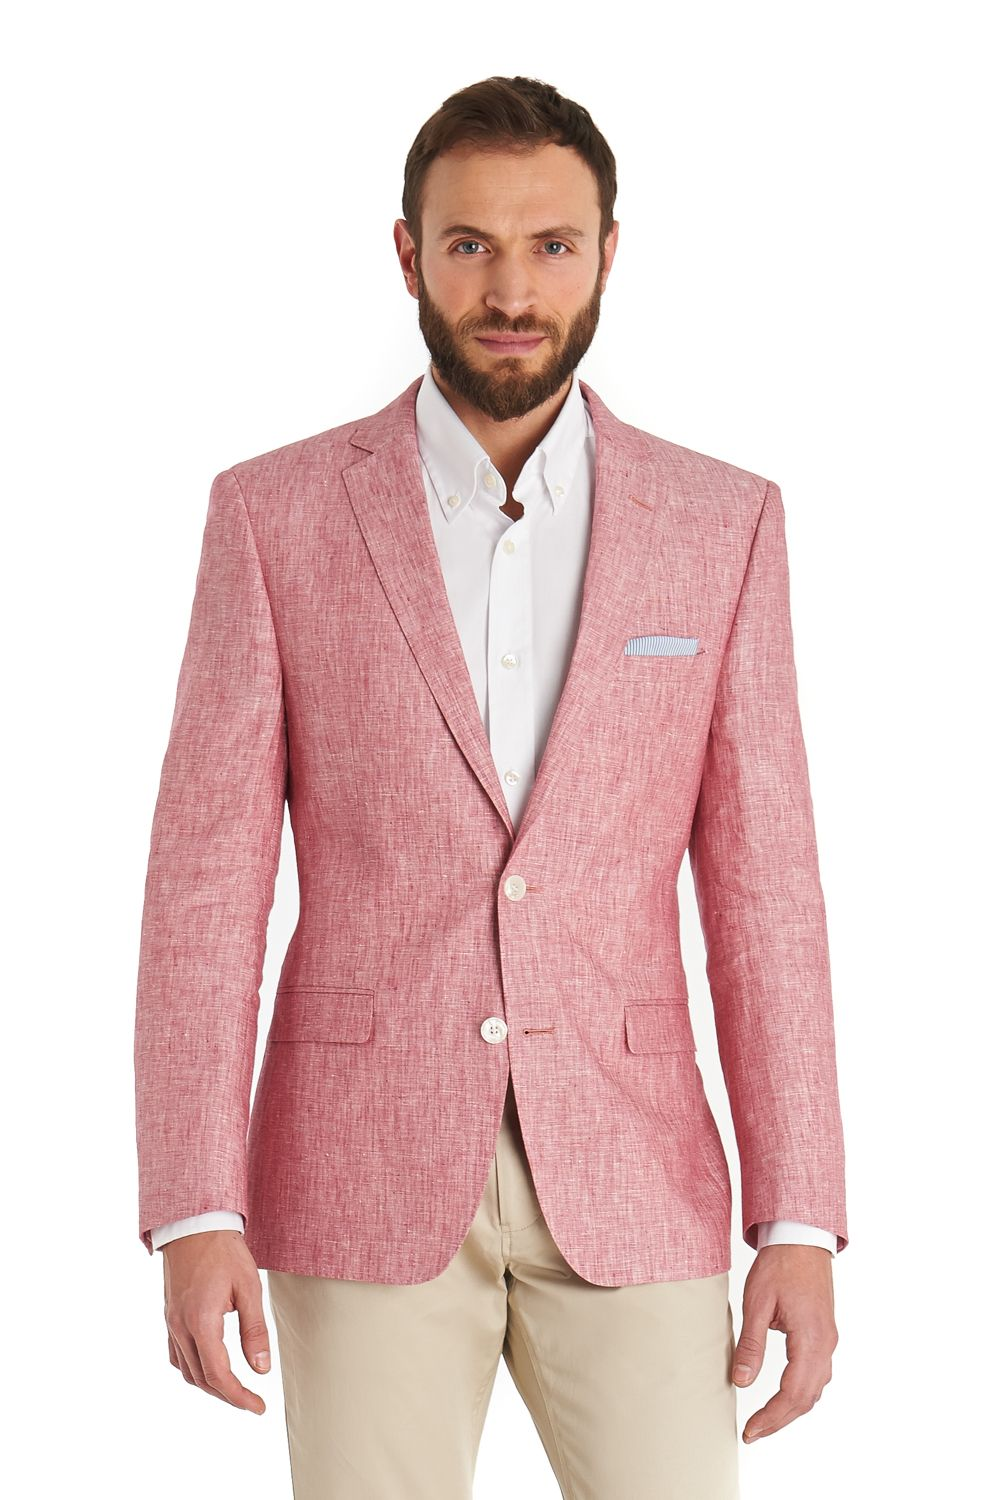 This+Blazer+tailored+fit+pink+linen+jacket+is+single+breasted+and+ ...